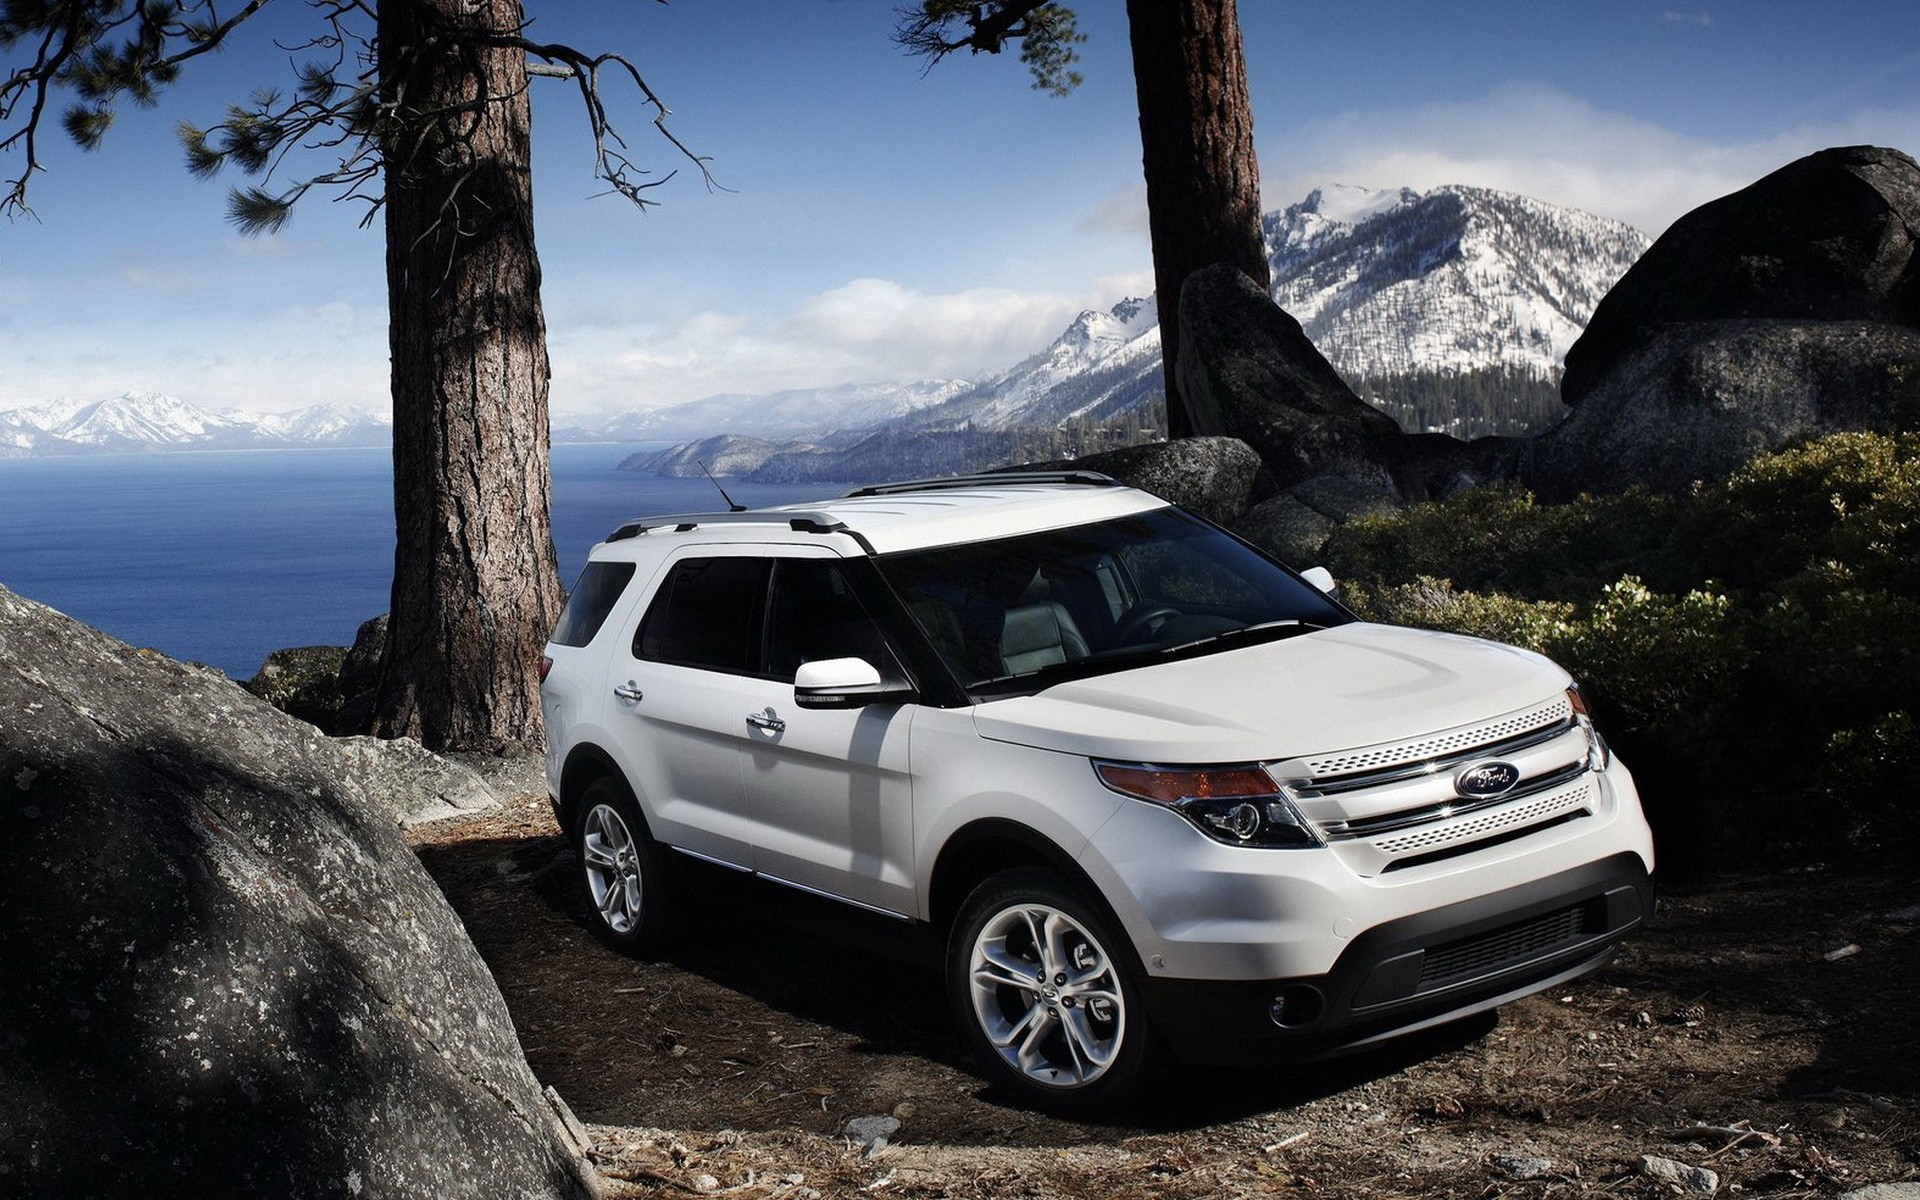 1920x1200 - Ford Explorer Wallpapers 24